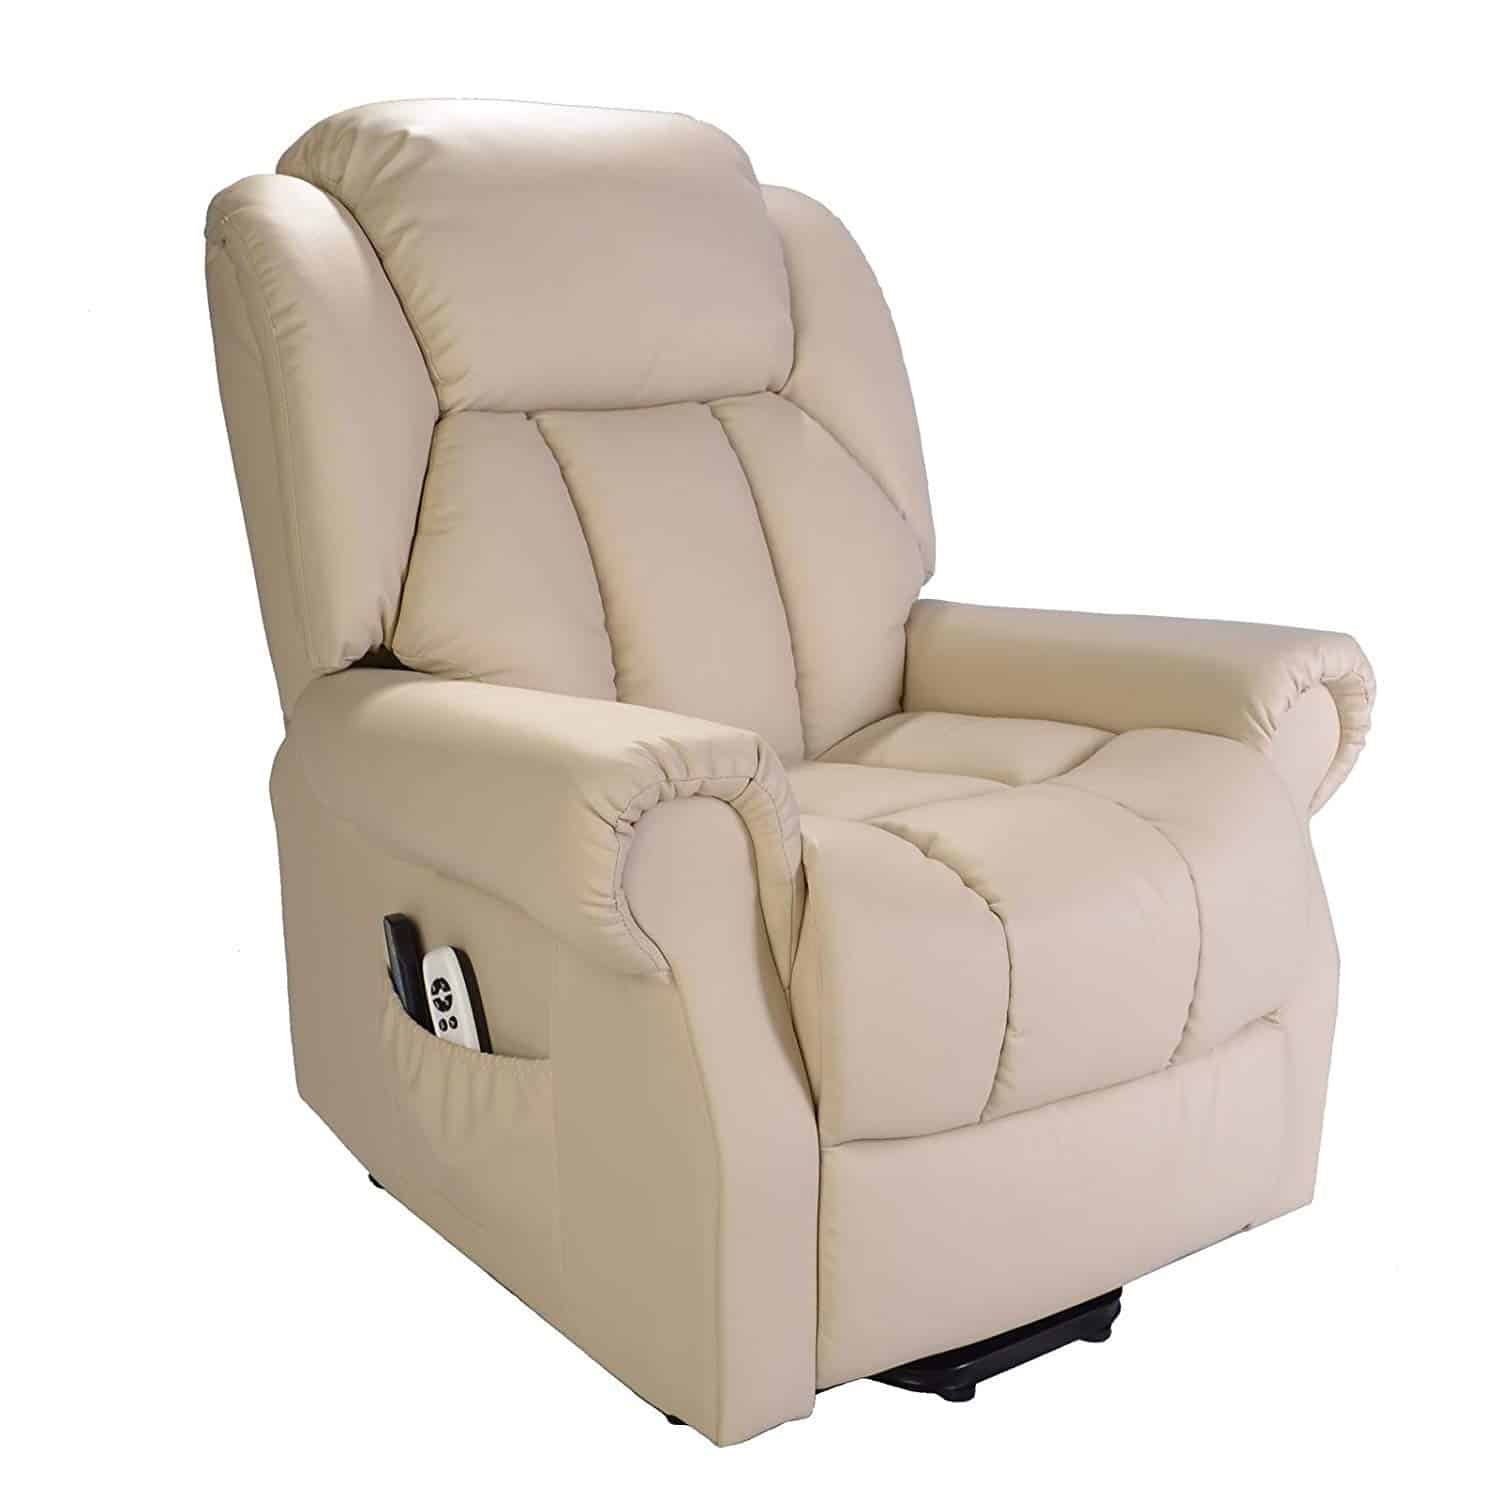 Leather Electric Recliner Sofa Uk: THE BEST ELECTRIC RECLINER CHAIRS FOR THE ELDERLY In 2018